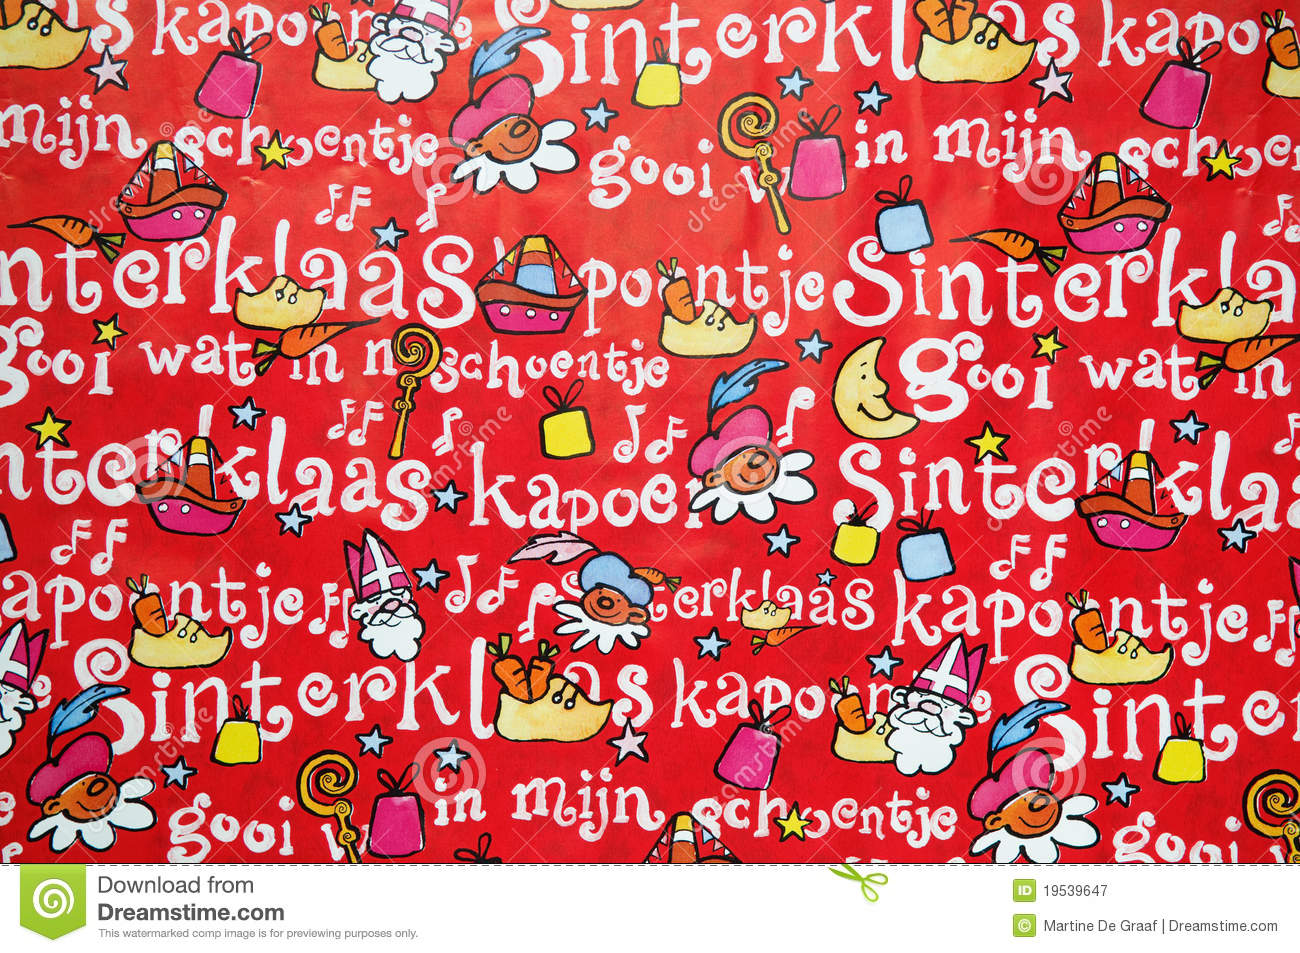 Sinterklaas Kapoentje Sinterklaas Background Stock Image Image Of Colorful 19539647